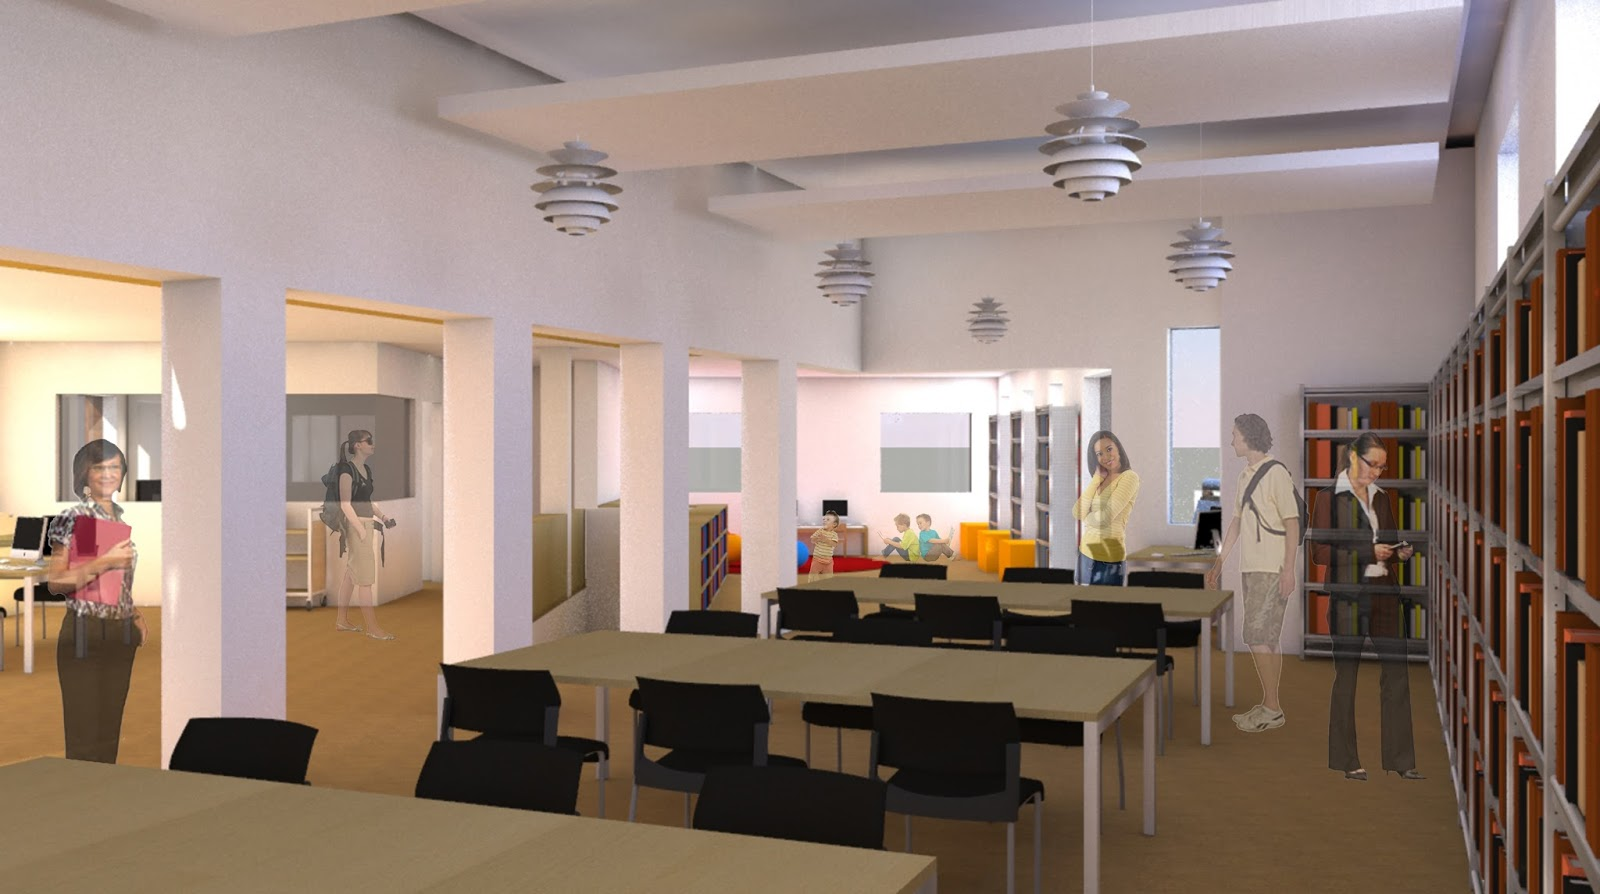 rendering of proposed library remodel